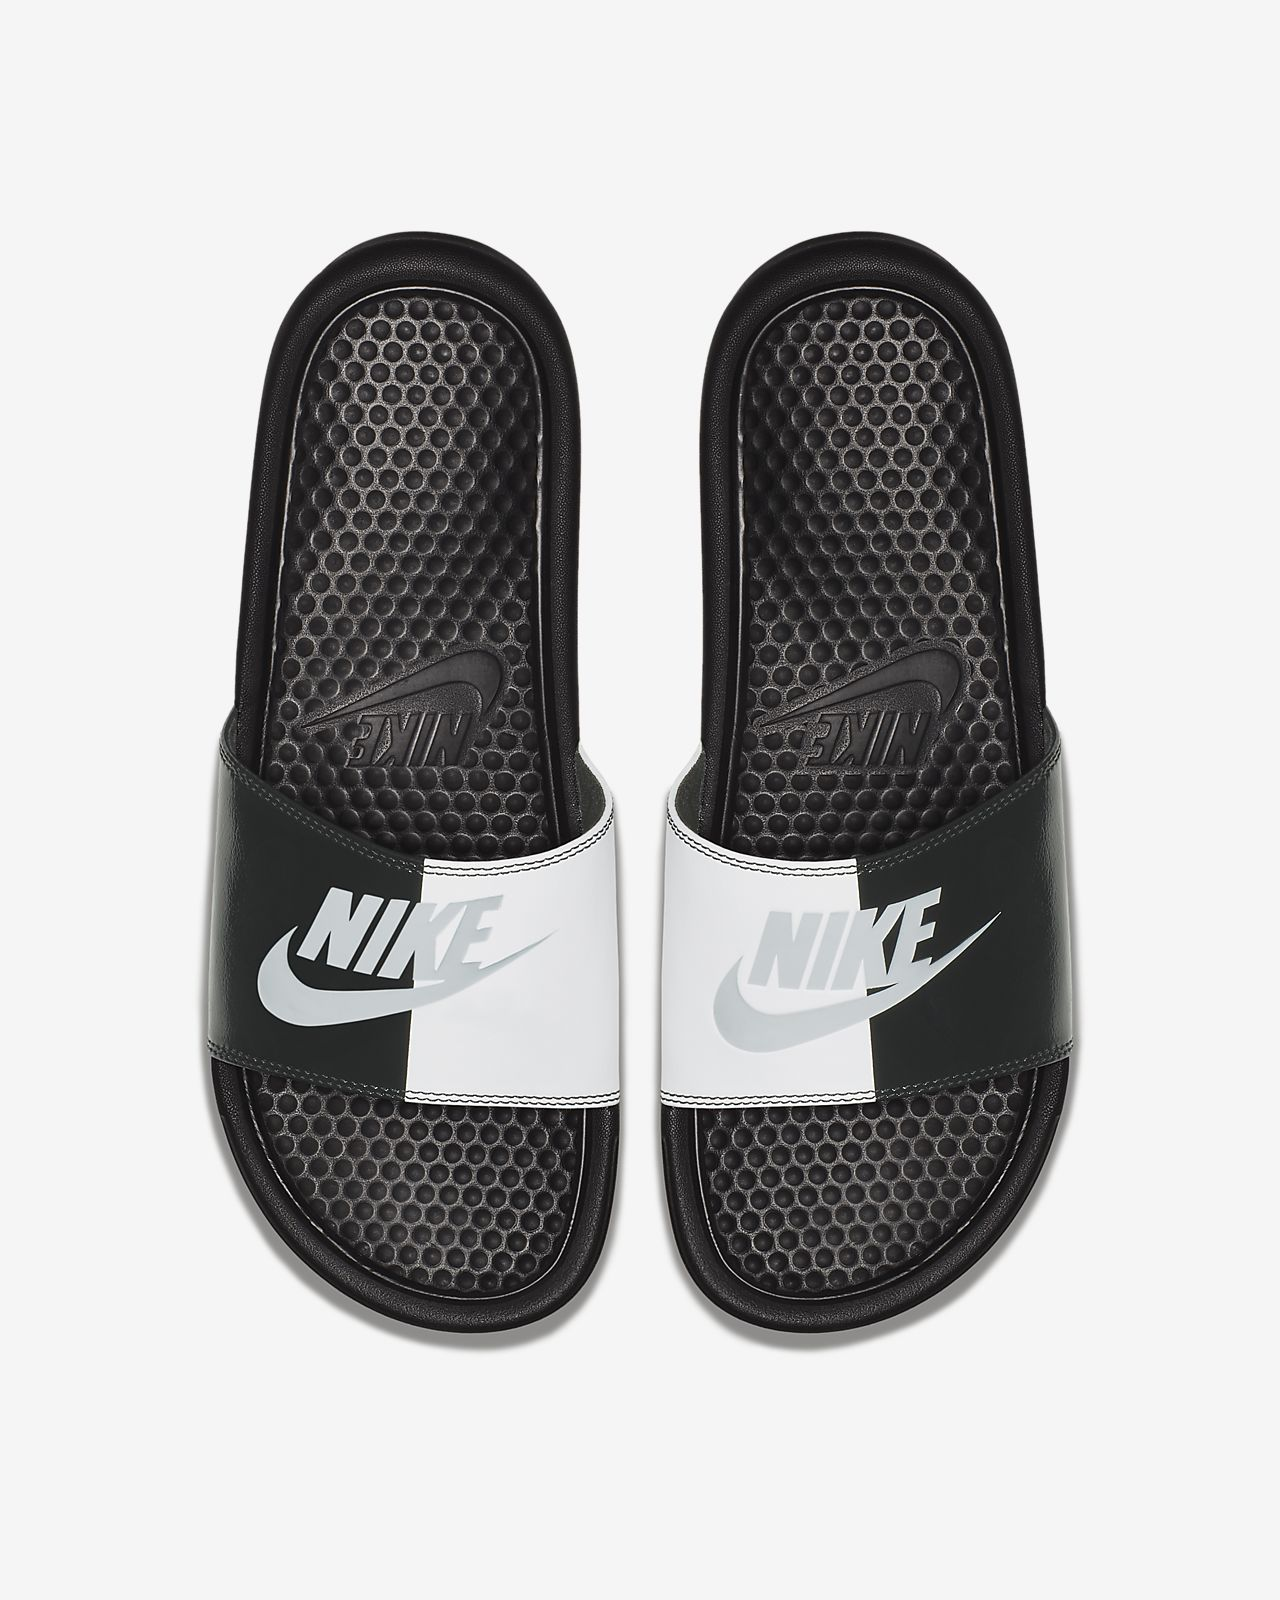 8be653b69f36 official mix match nike sandals a34ac 662dd